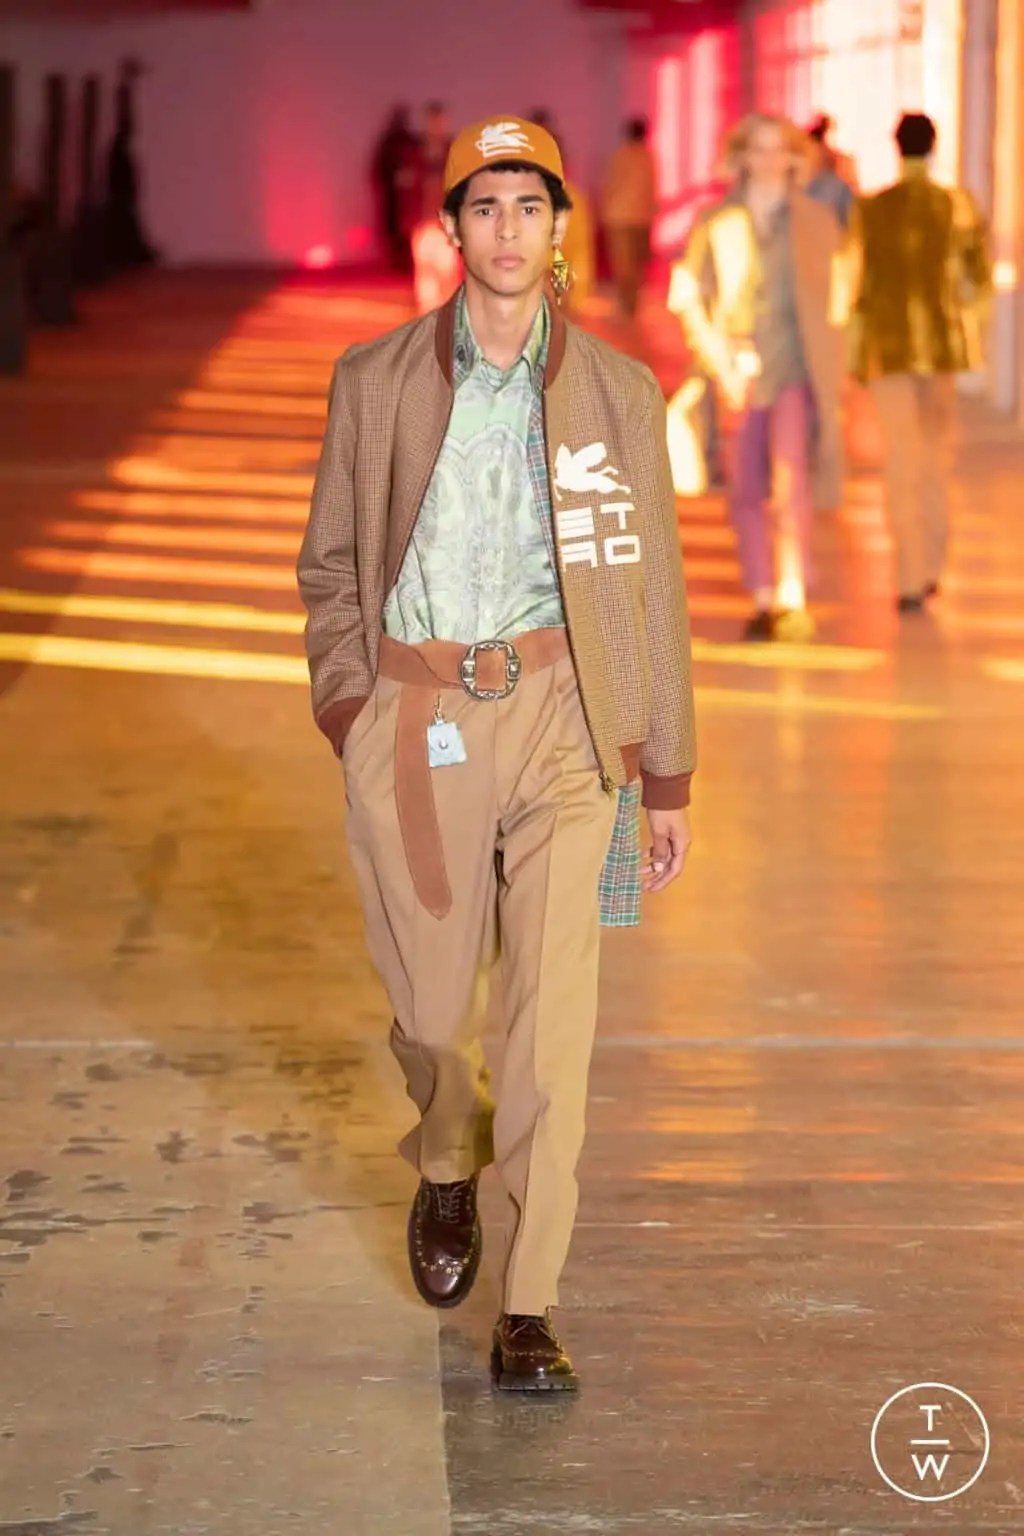 15 FALL/WINTER TRENDS FOR MEN IN 2021 503